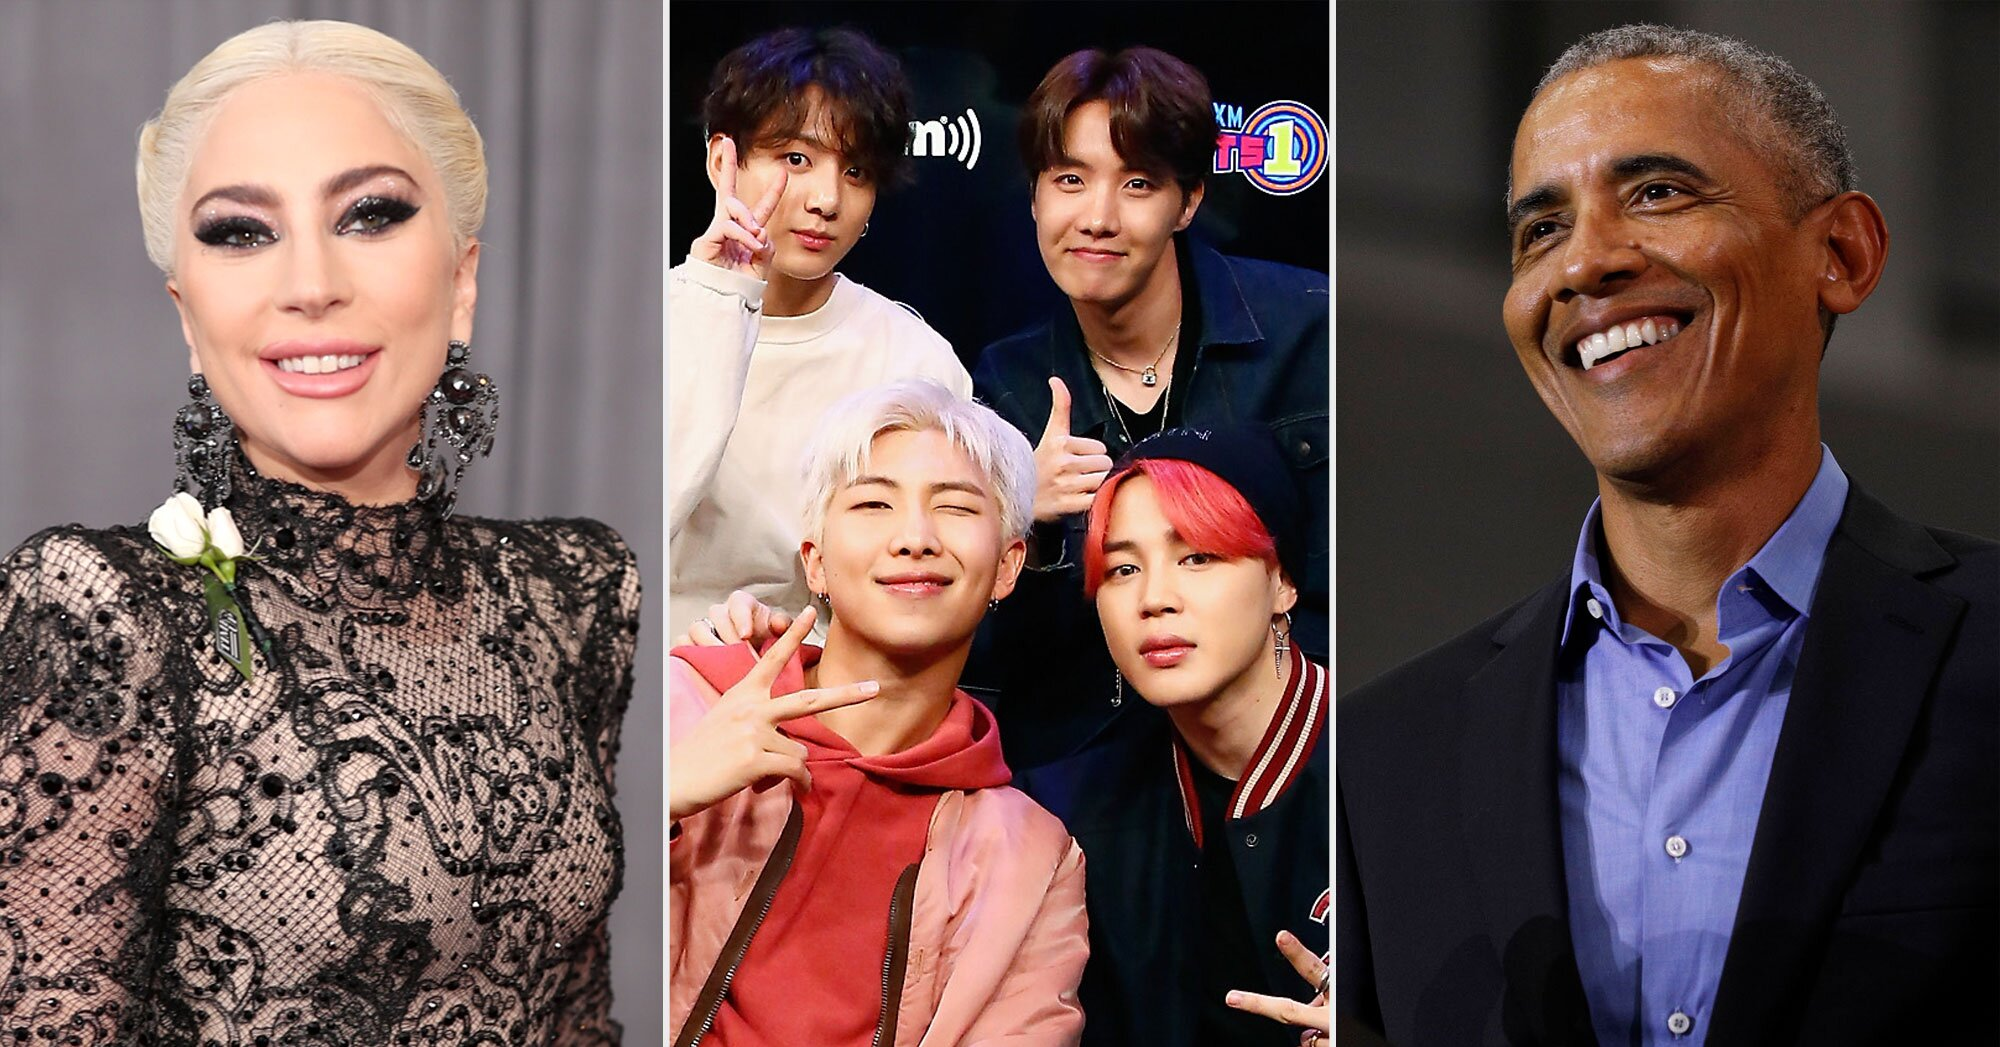 Lady Gaga, BTS, and more join the Obamas for virtual 2020 graduation ceremonies